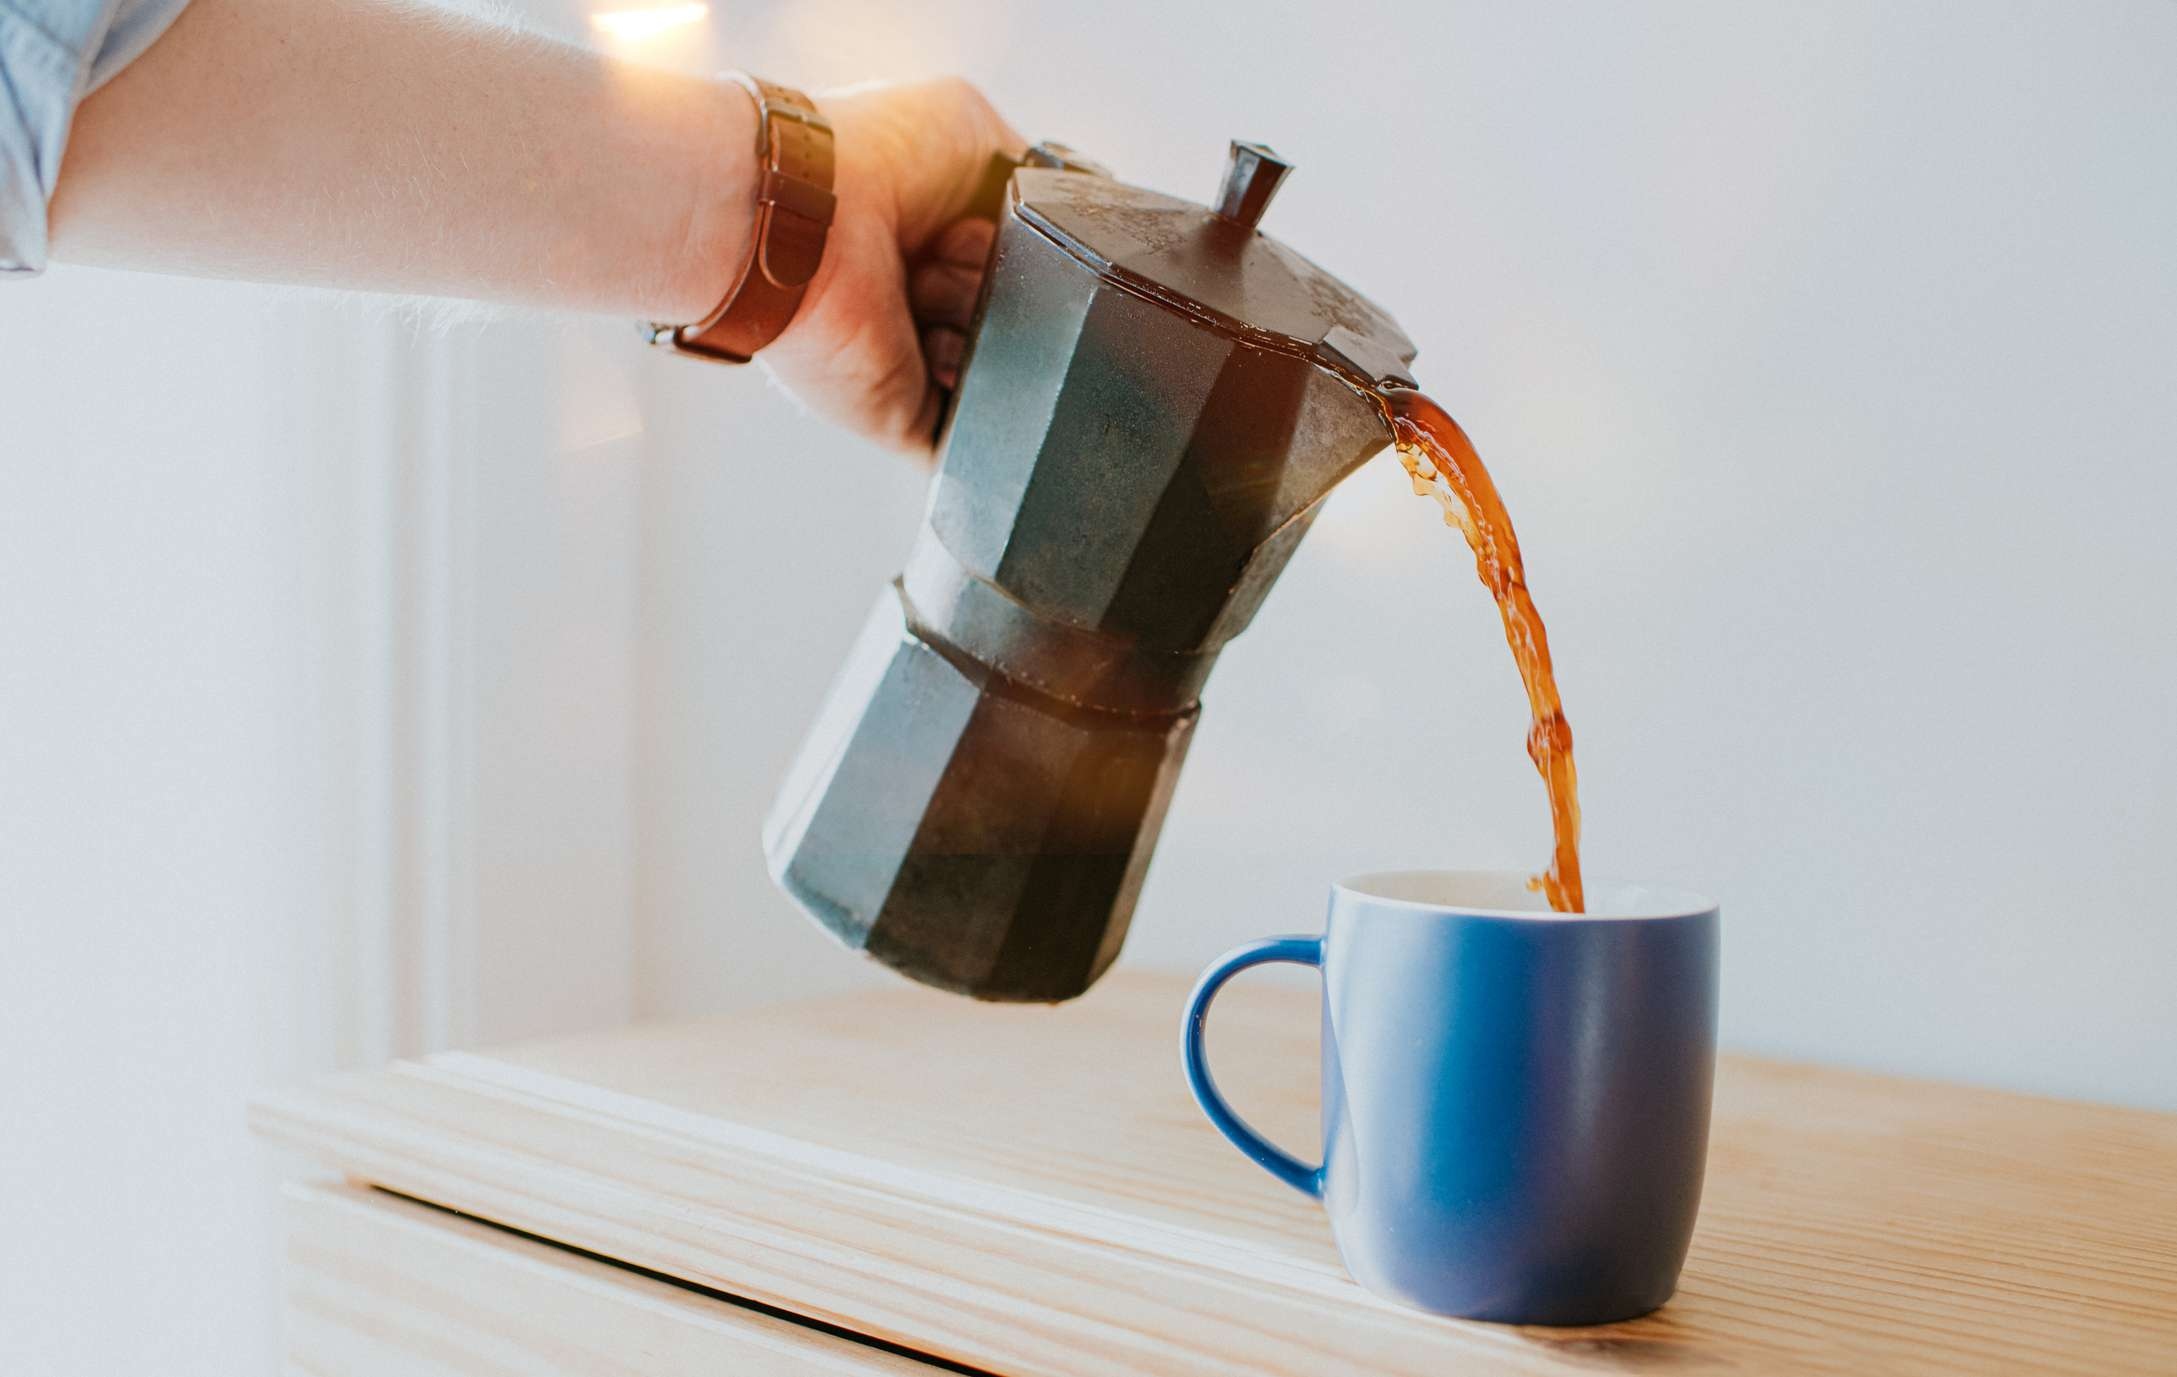 A person pouring coffee into a mug from a percolator.